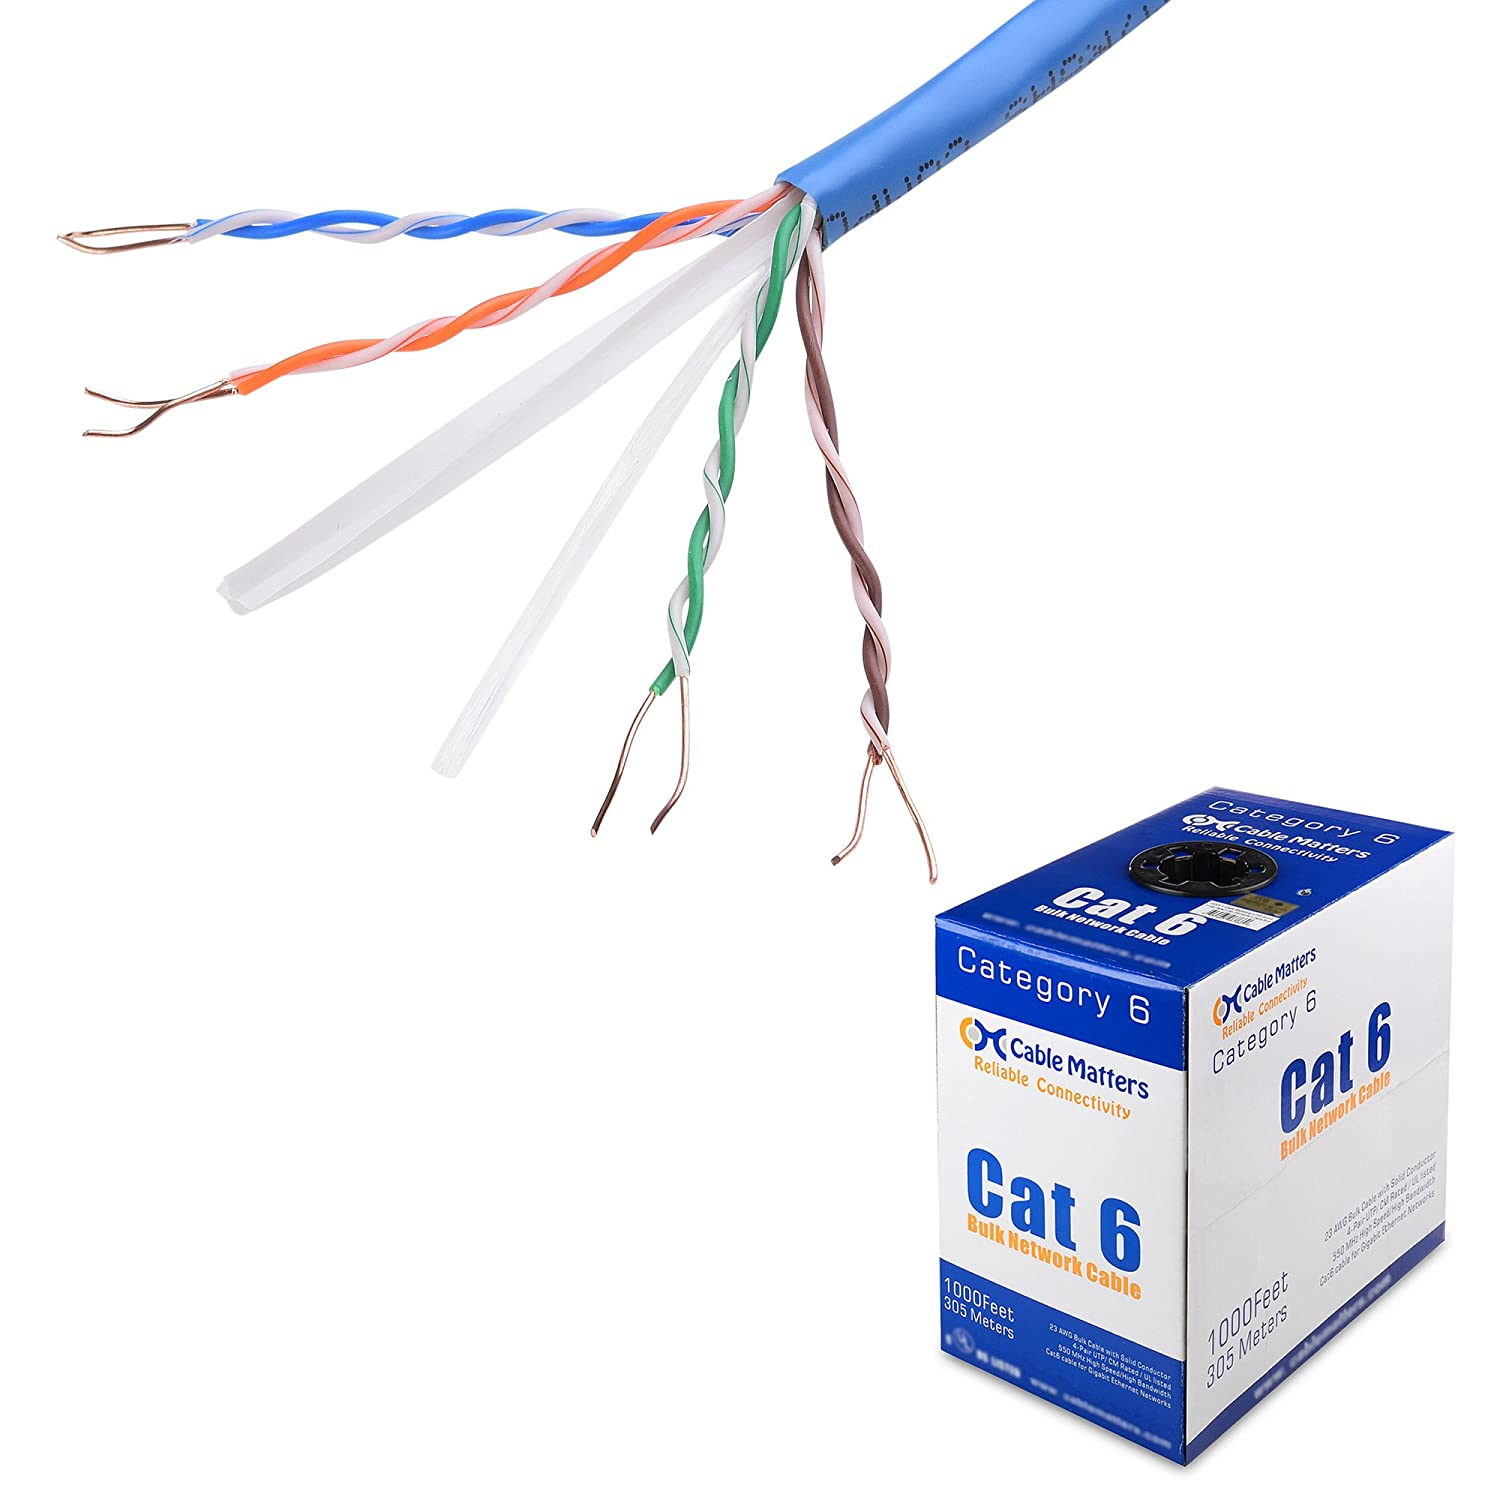 Ul Listed Cable Matters In Wall Rated Cm Bare Copper Cat5e Ethernet Patch Snagless Plenum 2539 Black Cat 6 Cat6 Bulk 1000 Feet Blue Computers